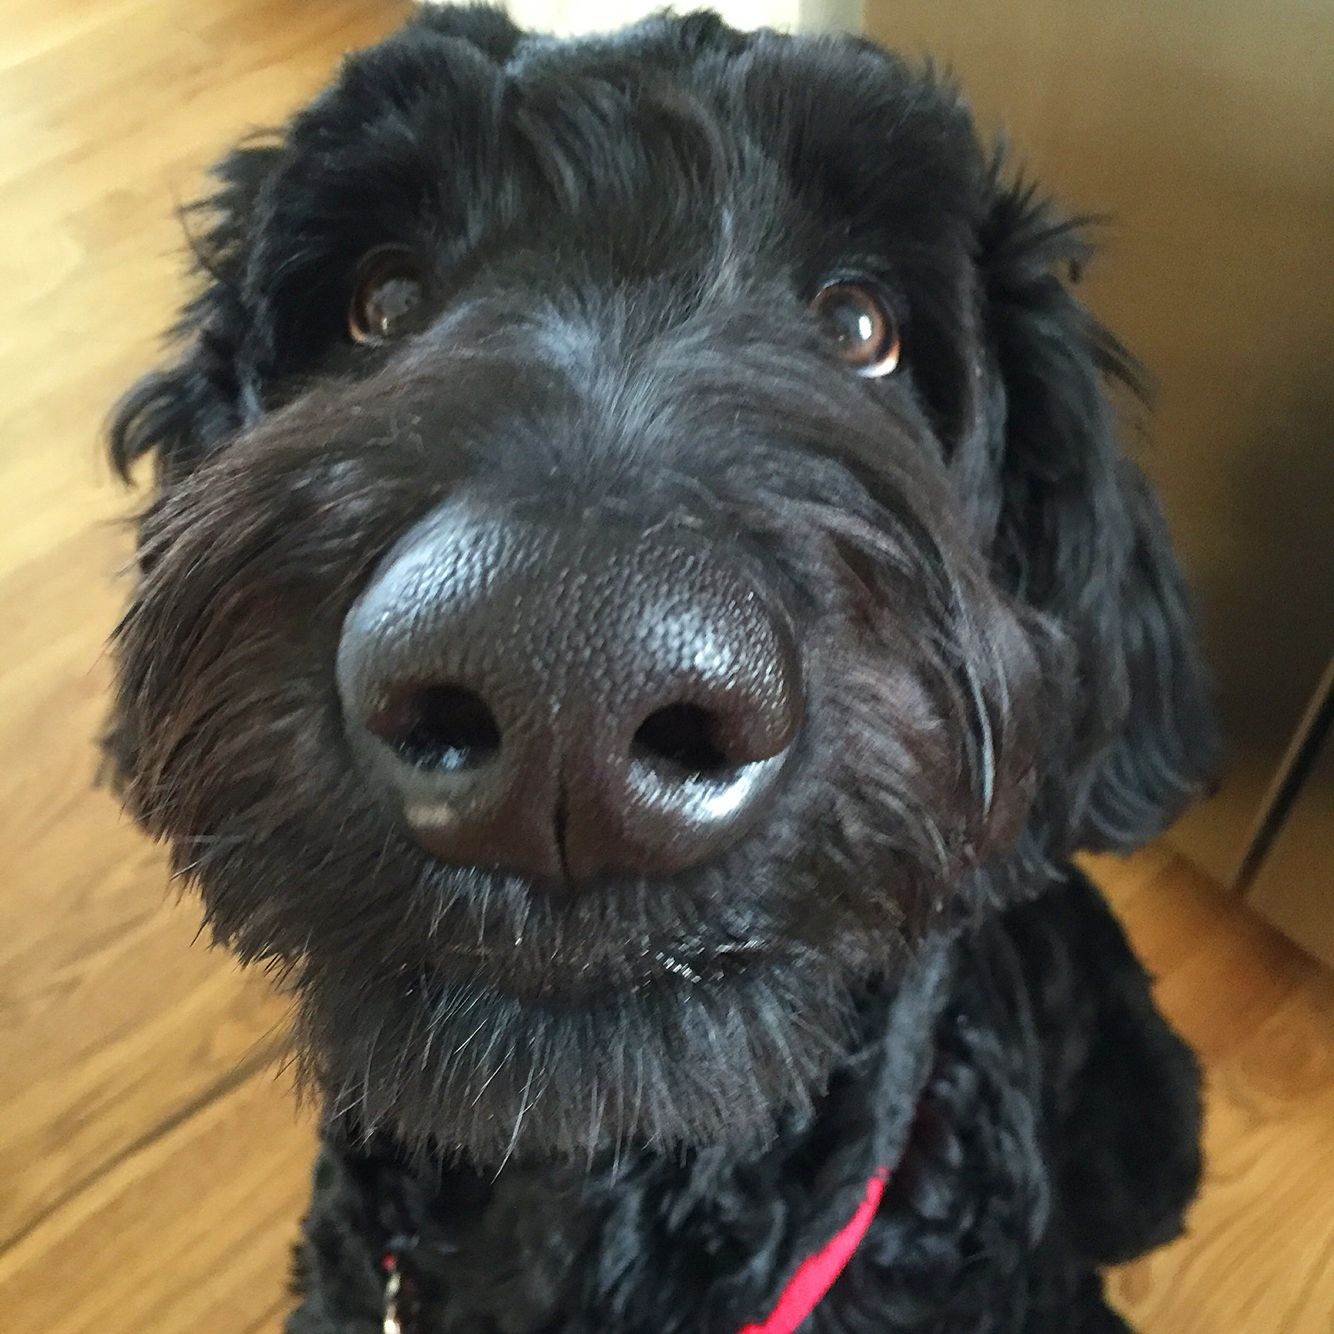 Barney Our Giant Schnoodle With His Haircut Dog Grooming Styles Schnoodle Grooming Style